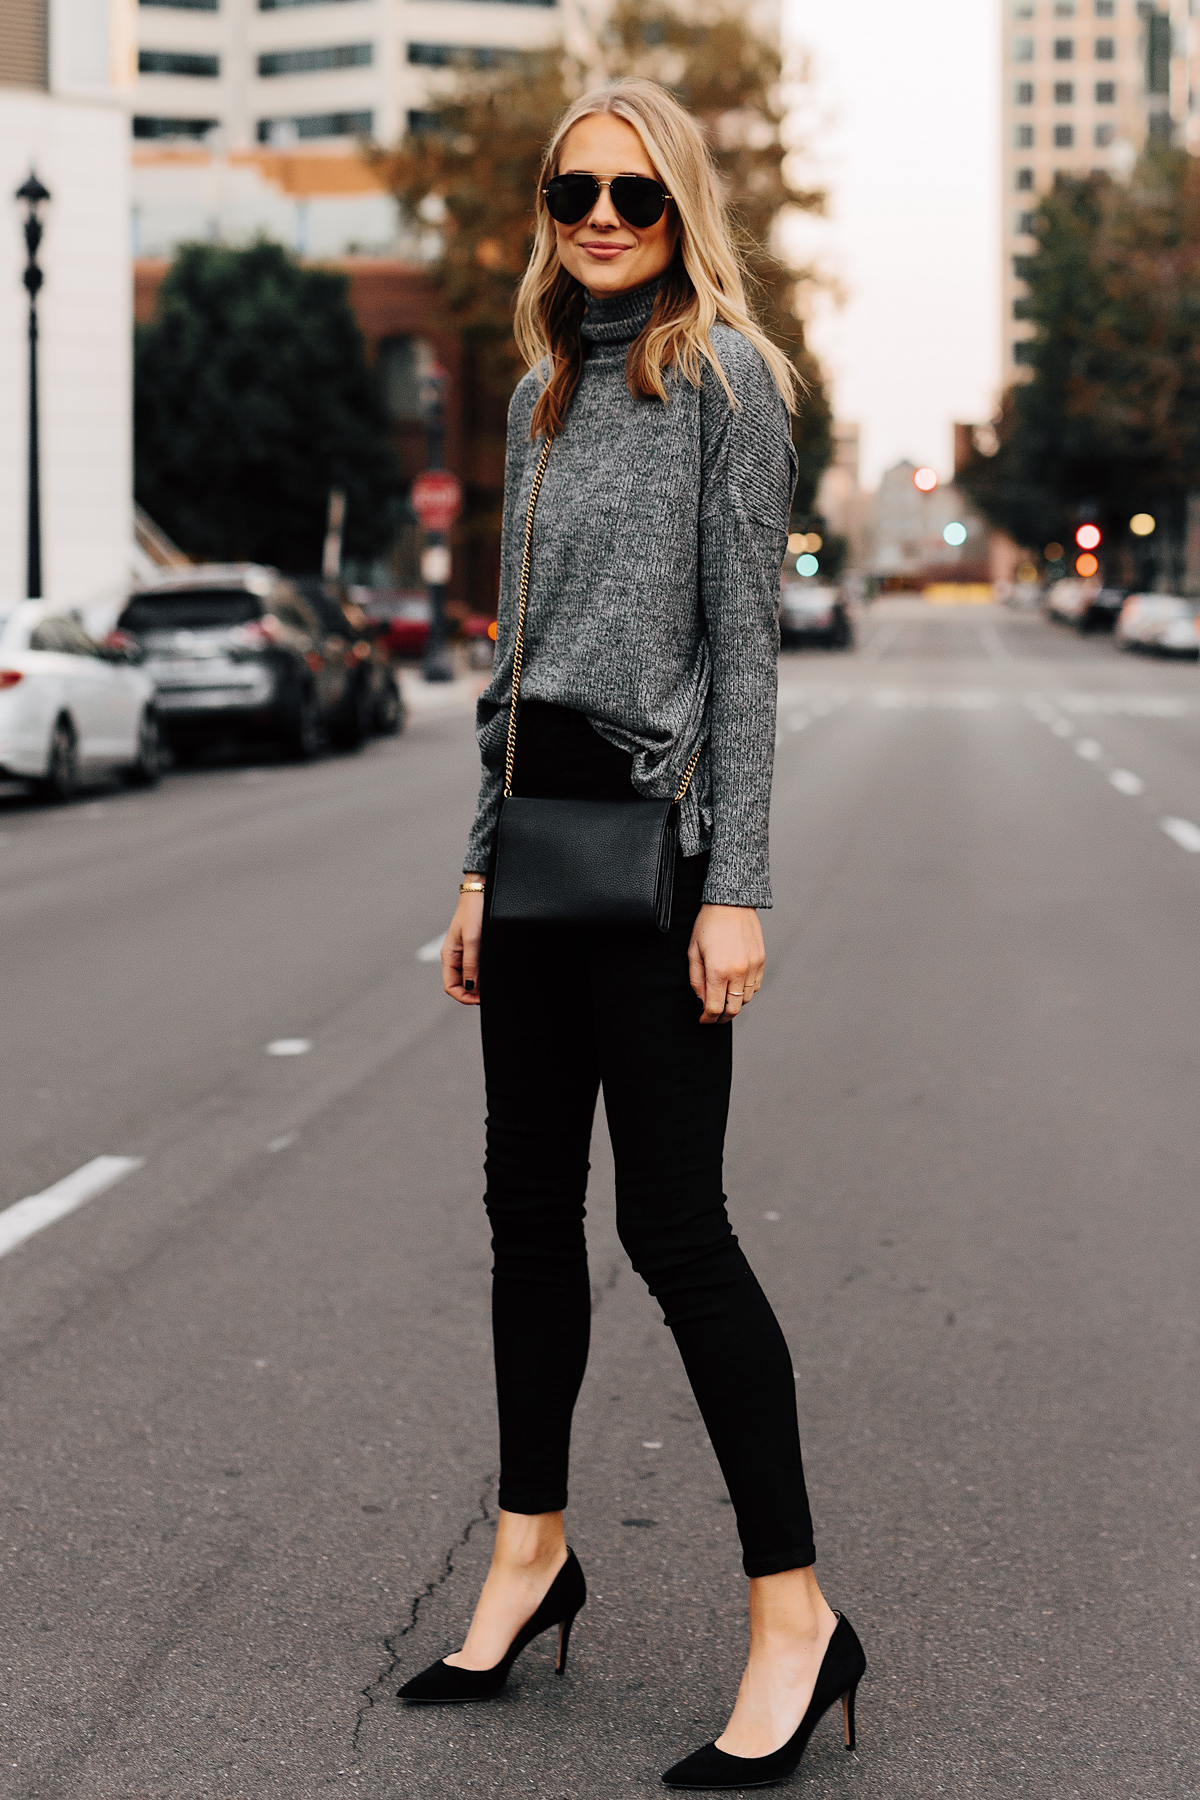 Blonde Woman Wearing Grey Turtleneck Top Black Skinny Jeans Black Pumps Outfit Fashion Jackson San Diego Fashion Blogger Street Style